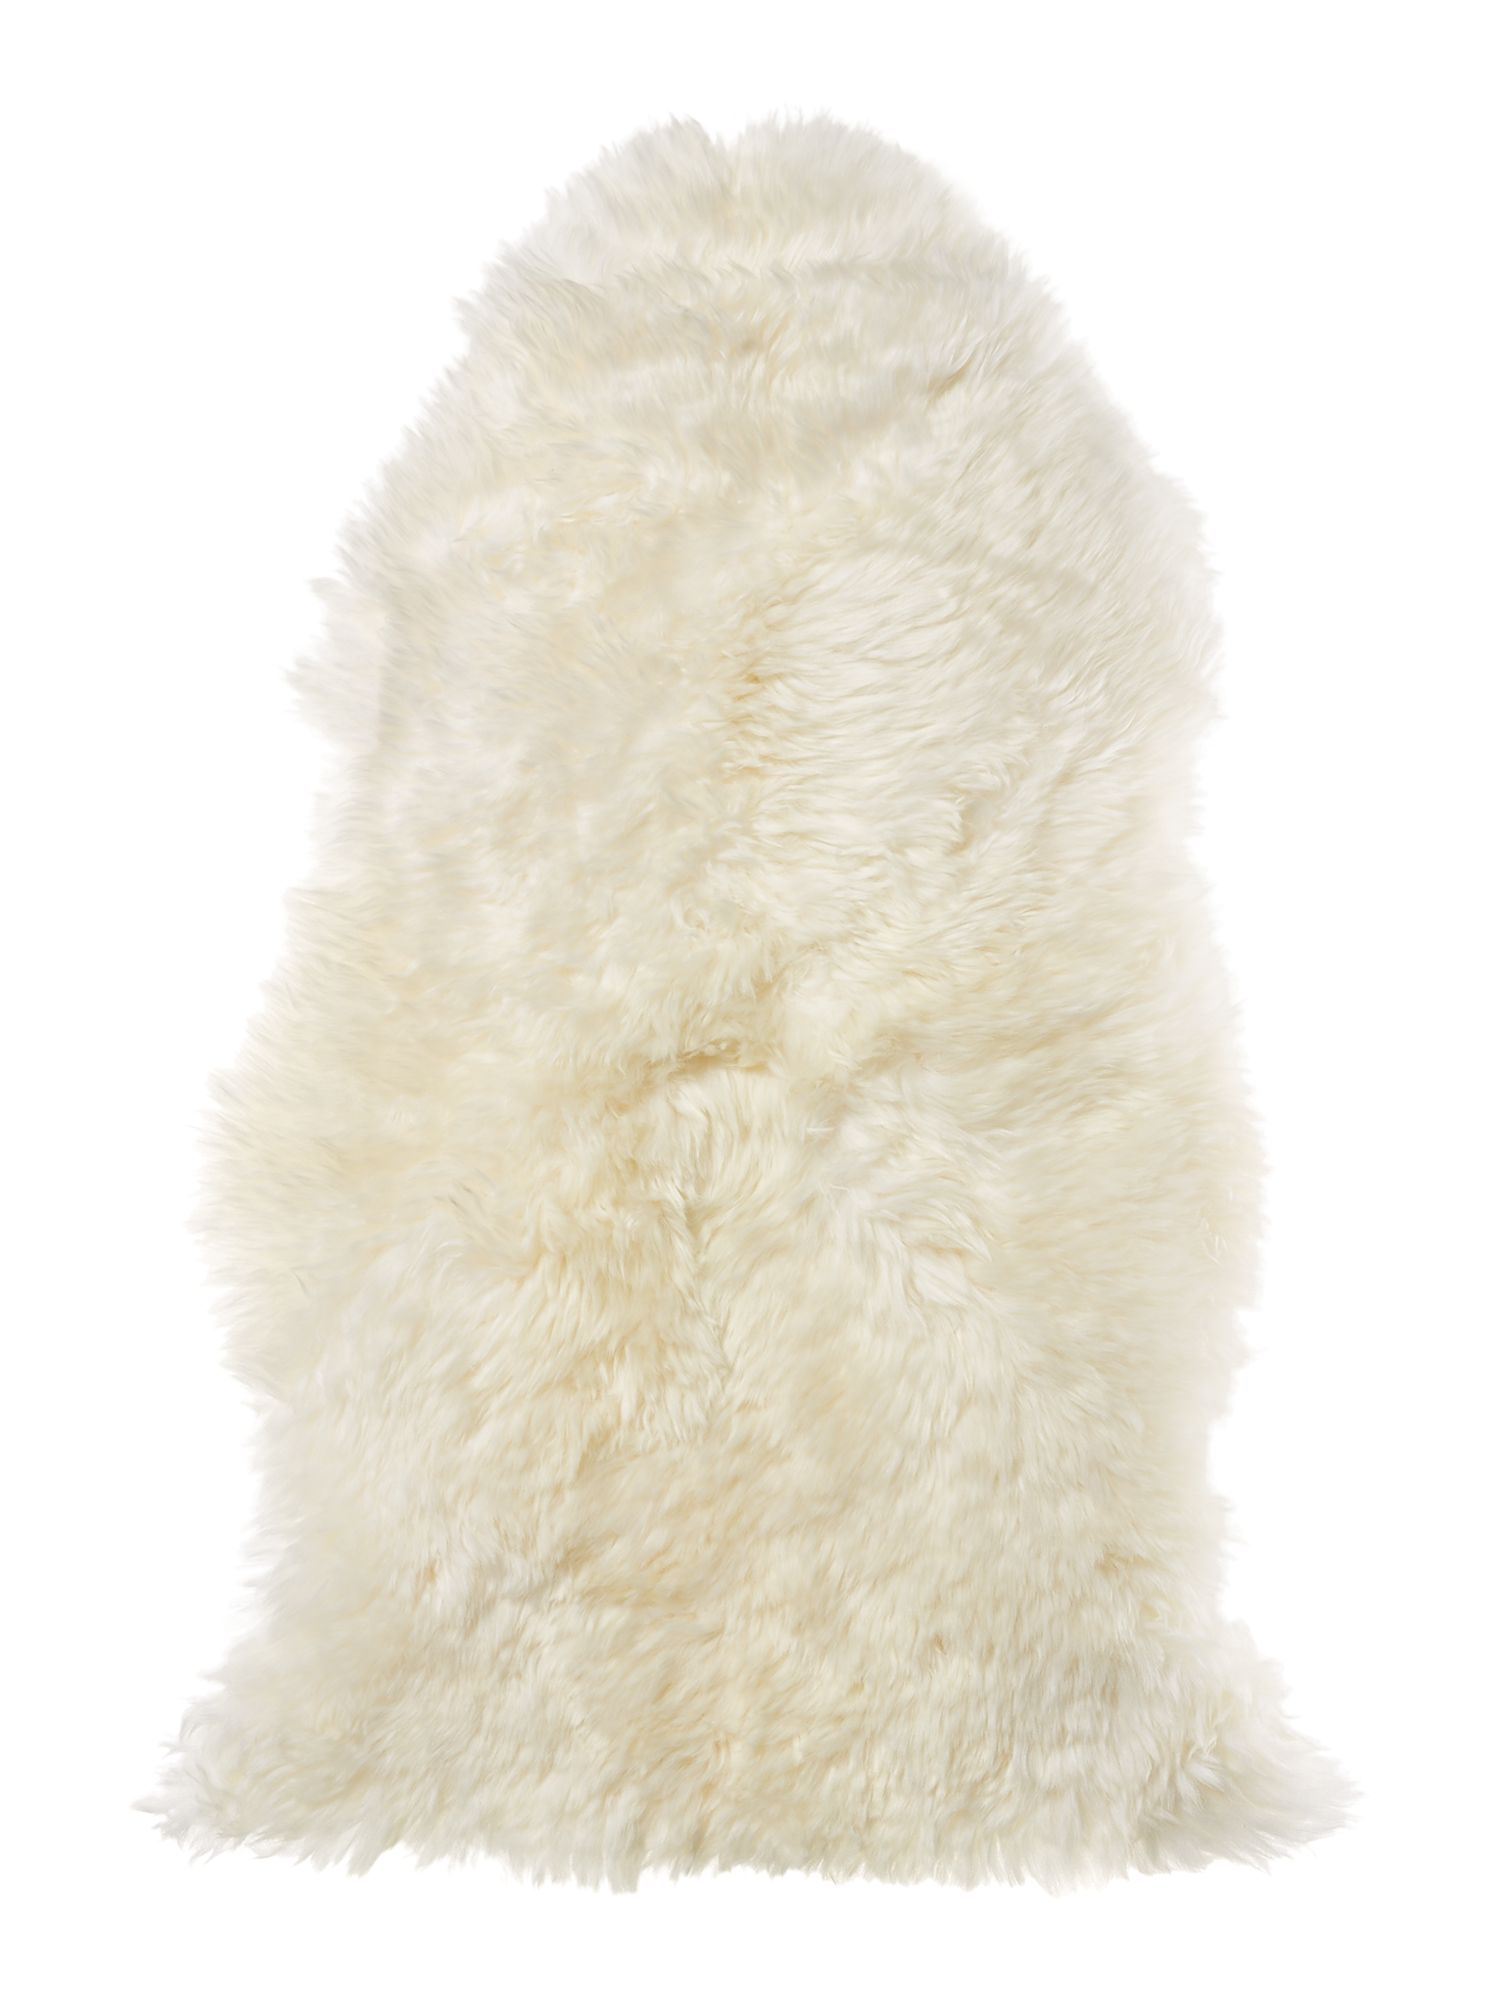 Linea Natural sheepskin, cream